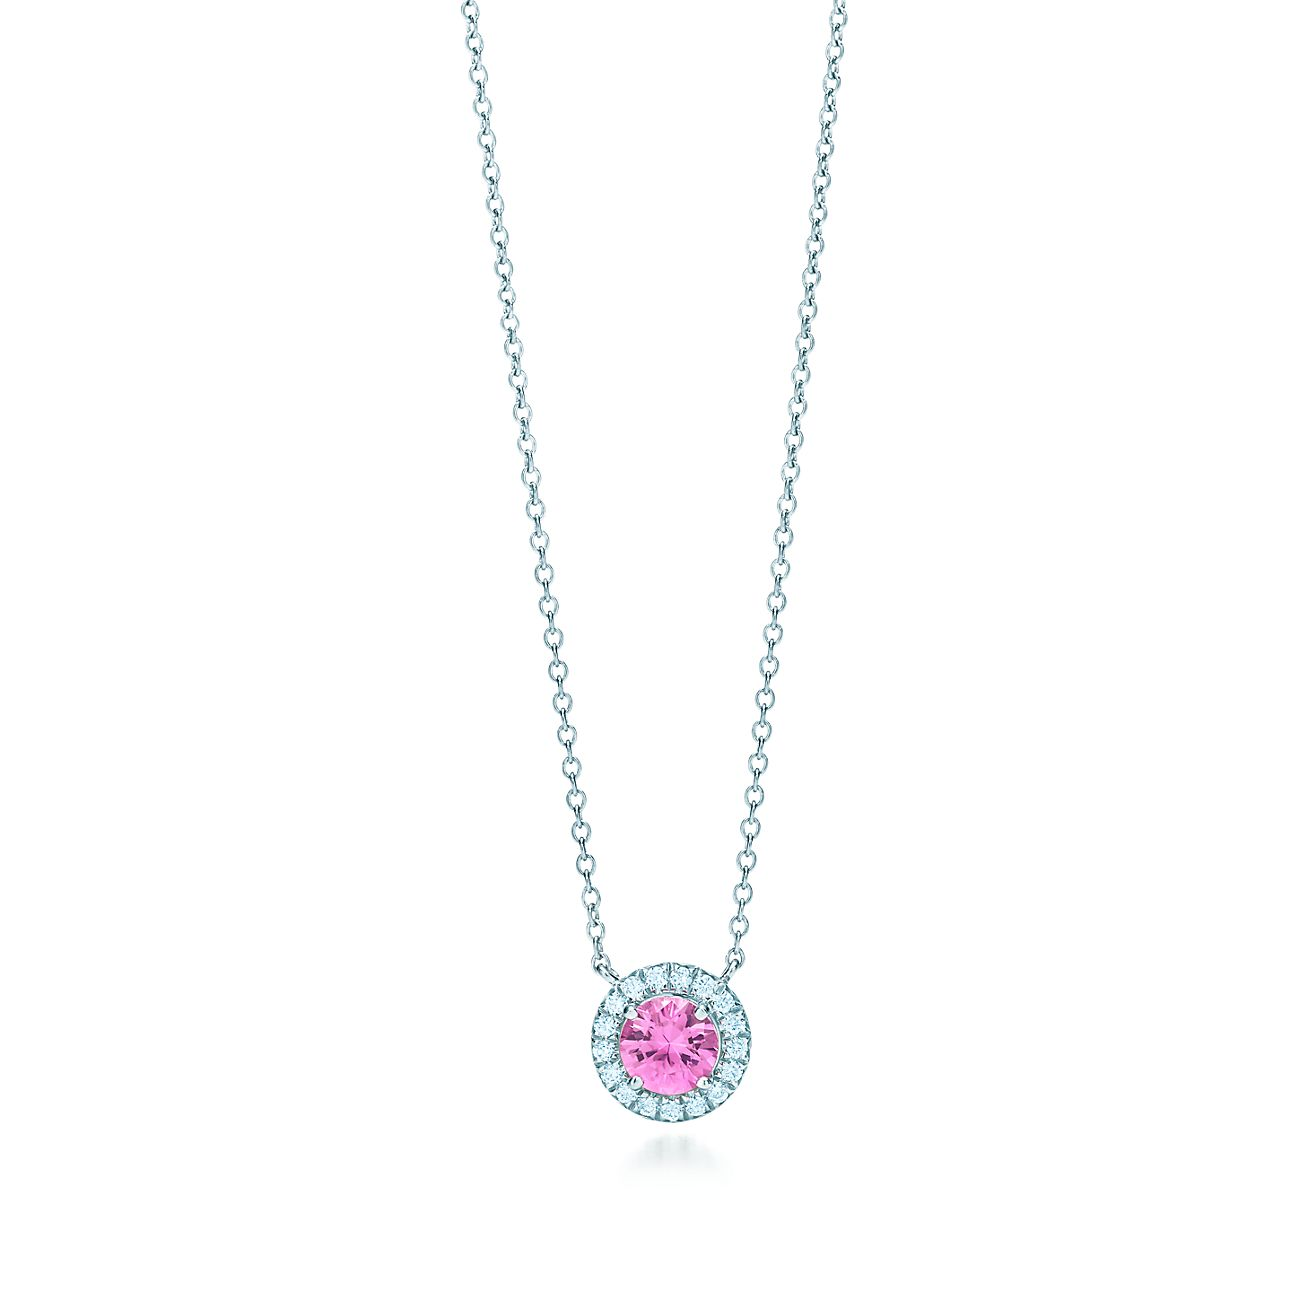 pink sapphire collections jewelerize necklace com created best sellers in silver products sterling